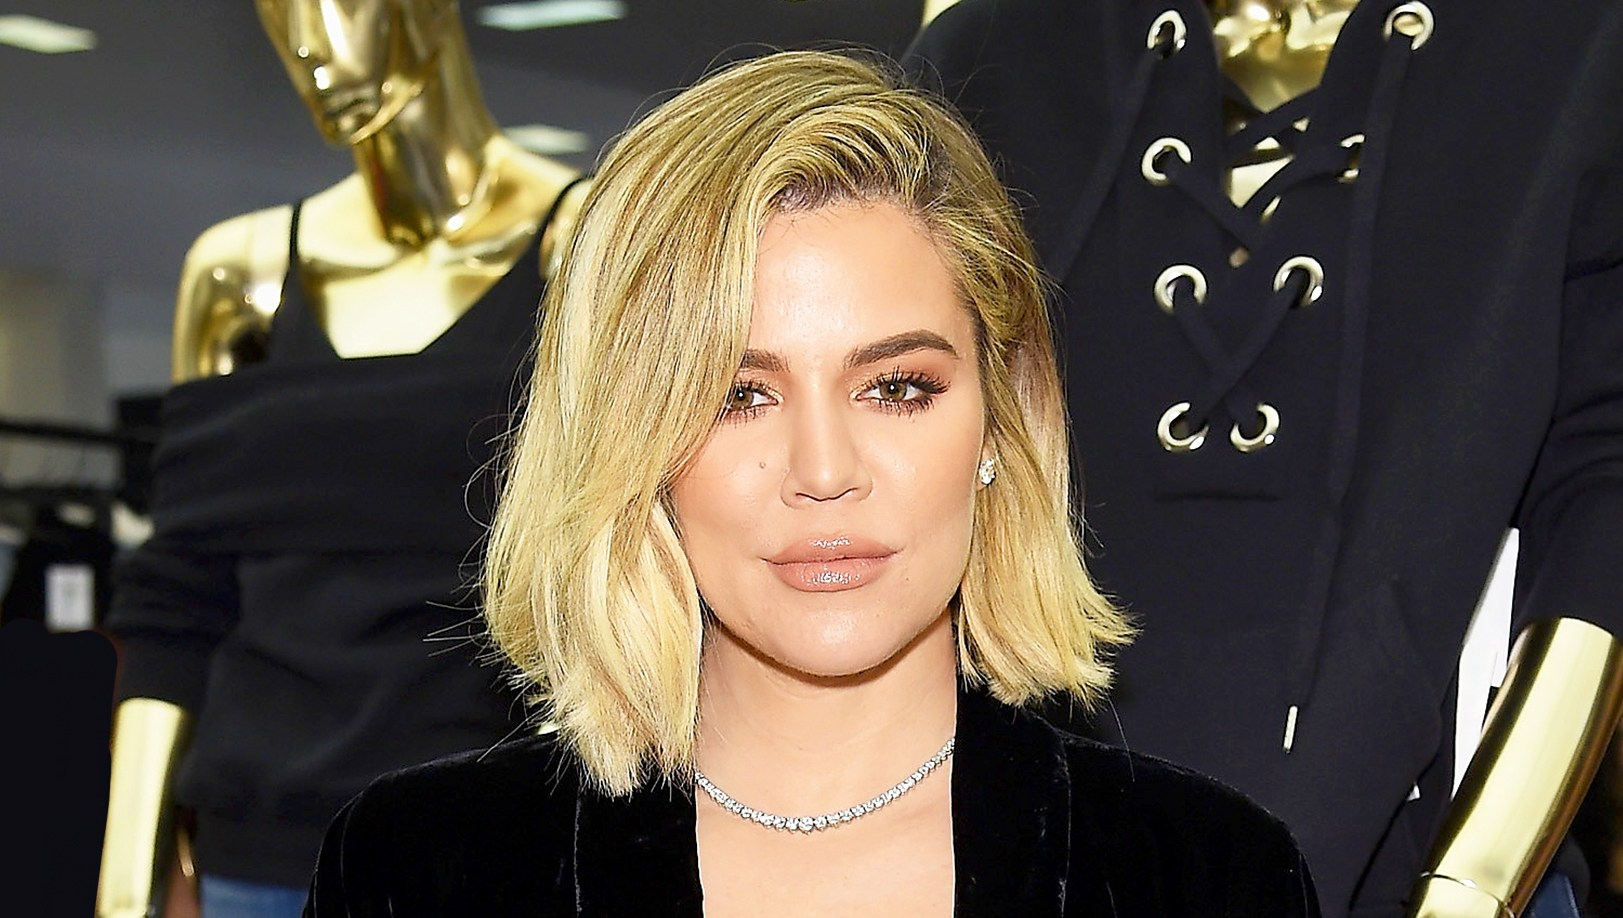 Khloe Kardashian celebrates the launch of Good American at Bloomingdale's on October 28, 2017 in New York City.